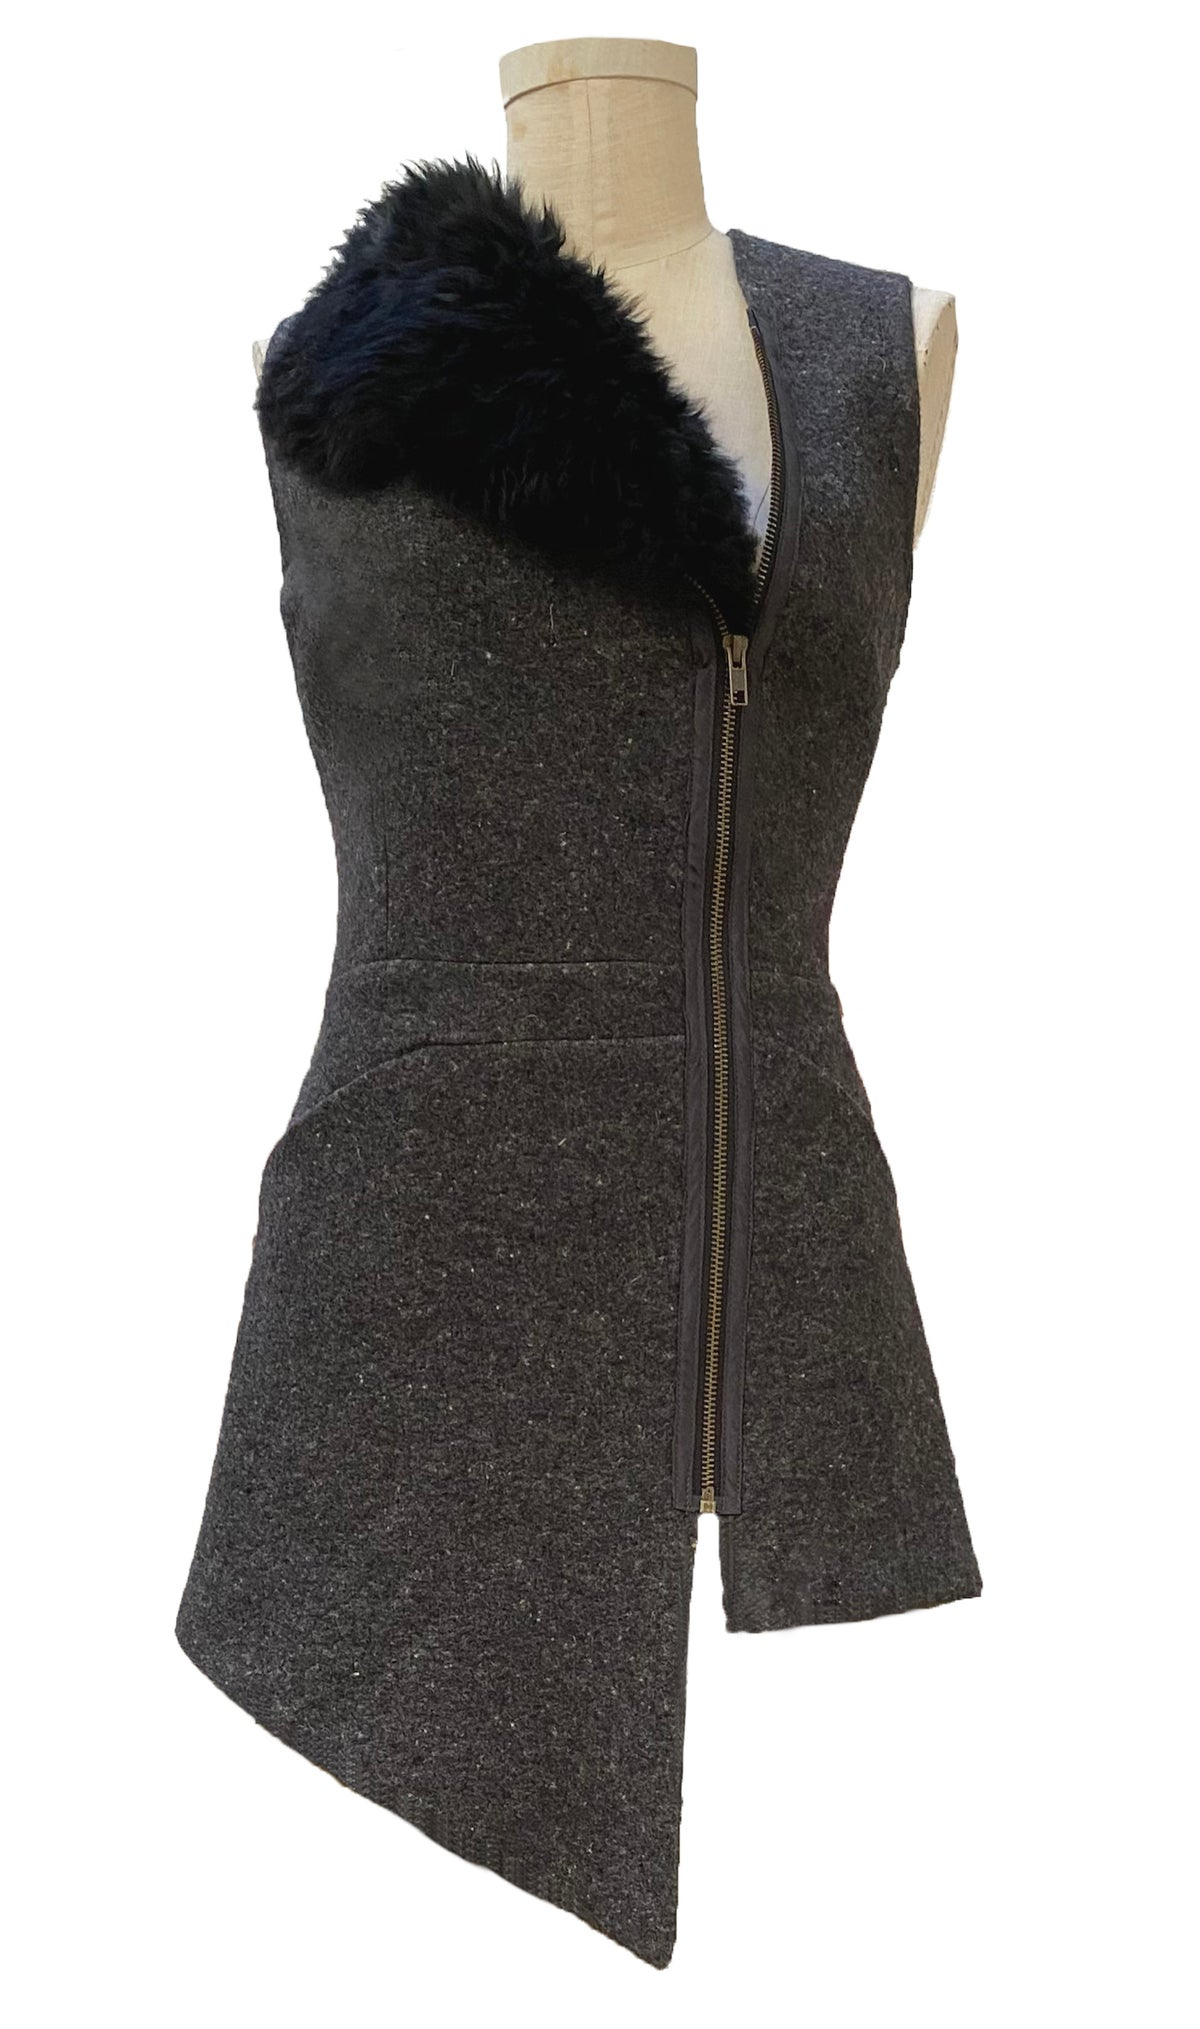 Image of felted wool vest